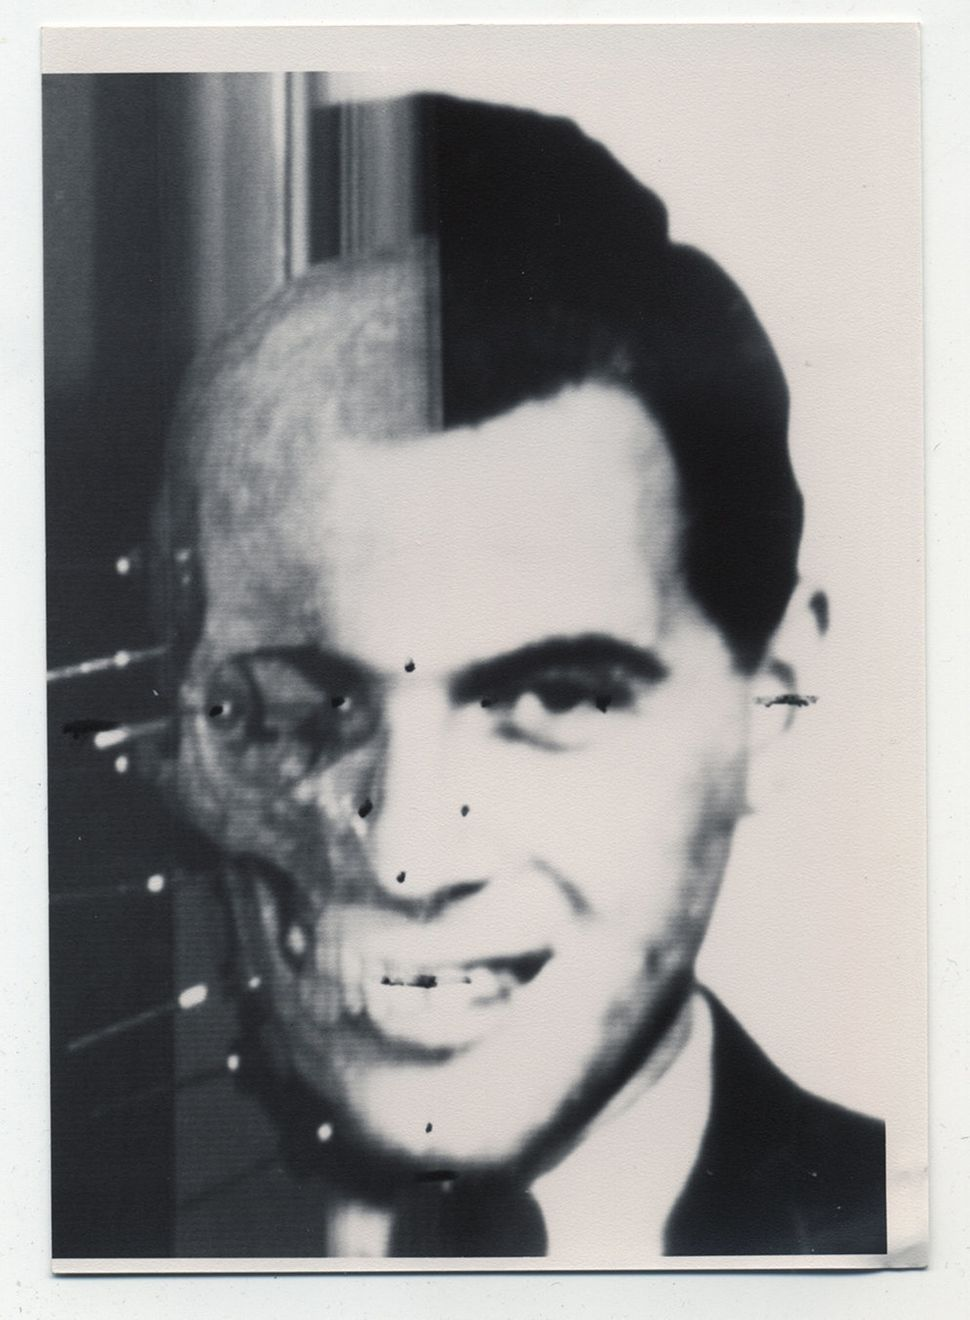 Portrait of Josef Mengele taken from the SS archives and from Wolfgang Gerhard (Mengele's pseudonym), found in the Bossert ho